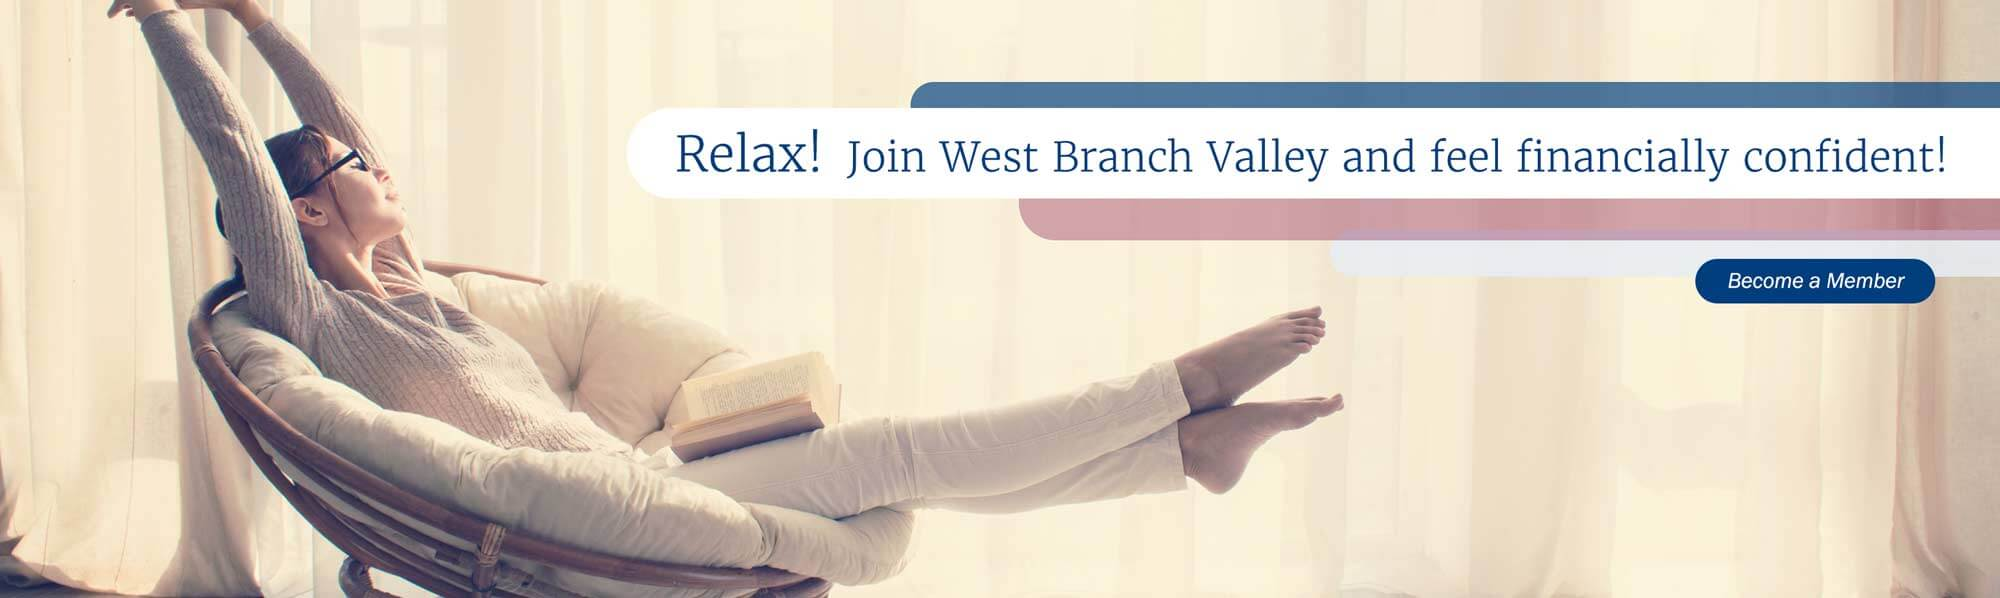 Relax! Join West branch valley and feel financially confident! Become a member.